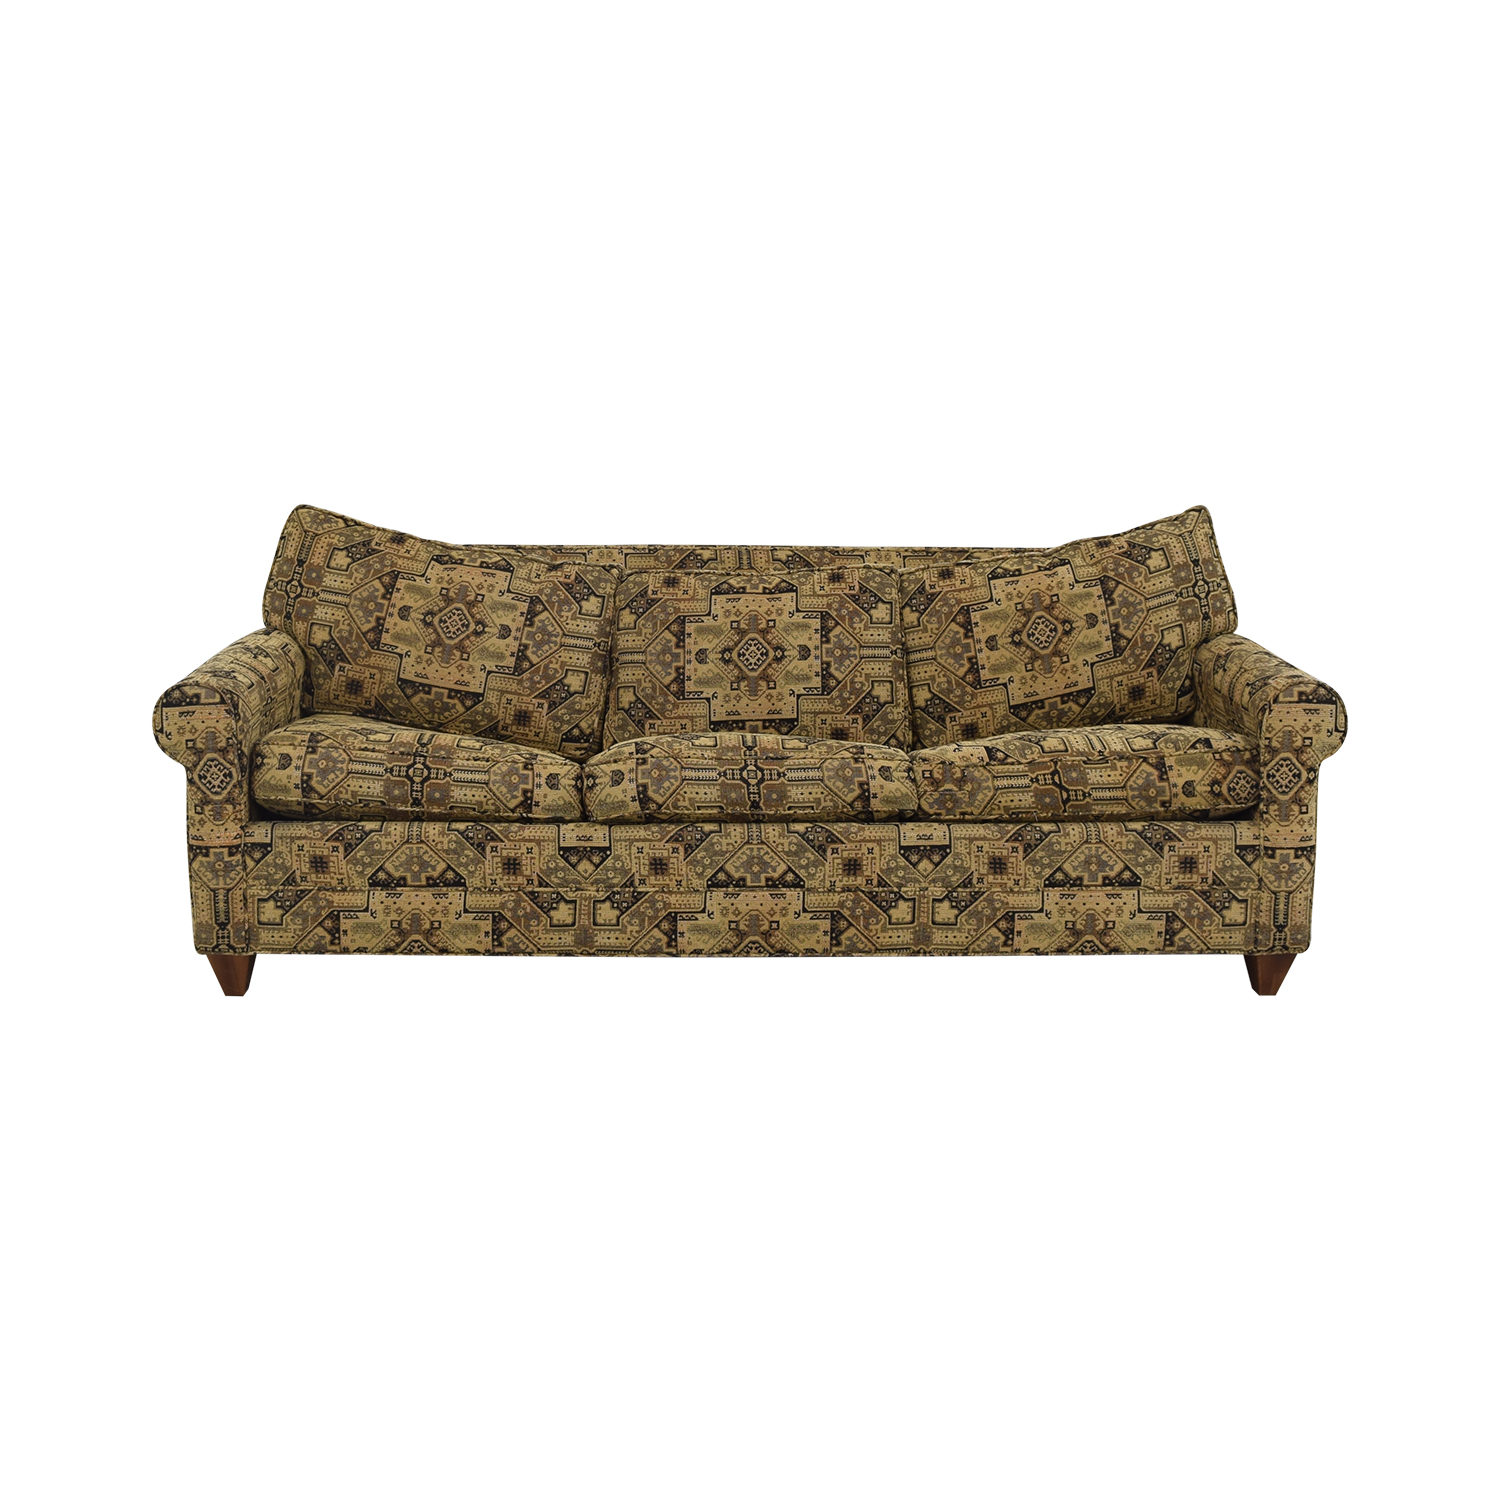 Carlyle Carlyle Queen Sleeper Sofa multi